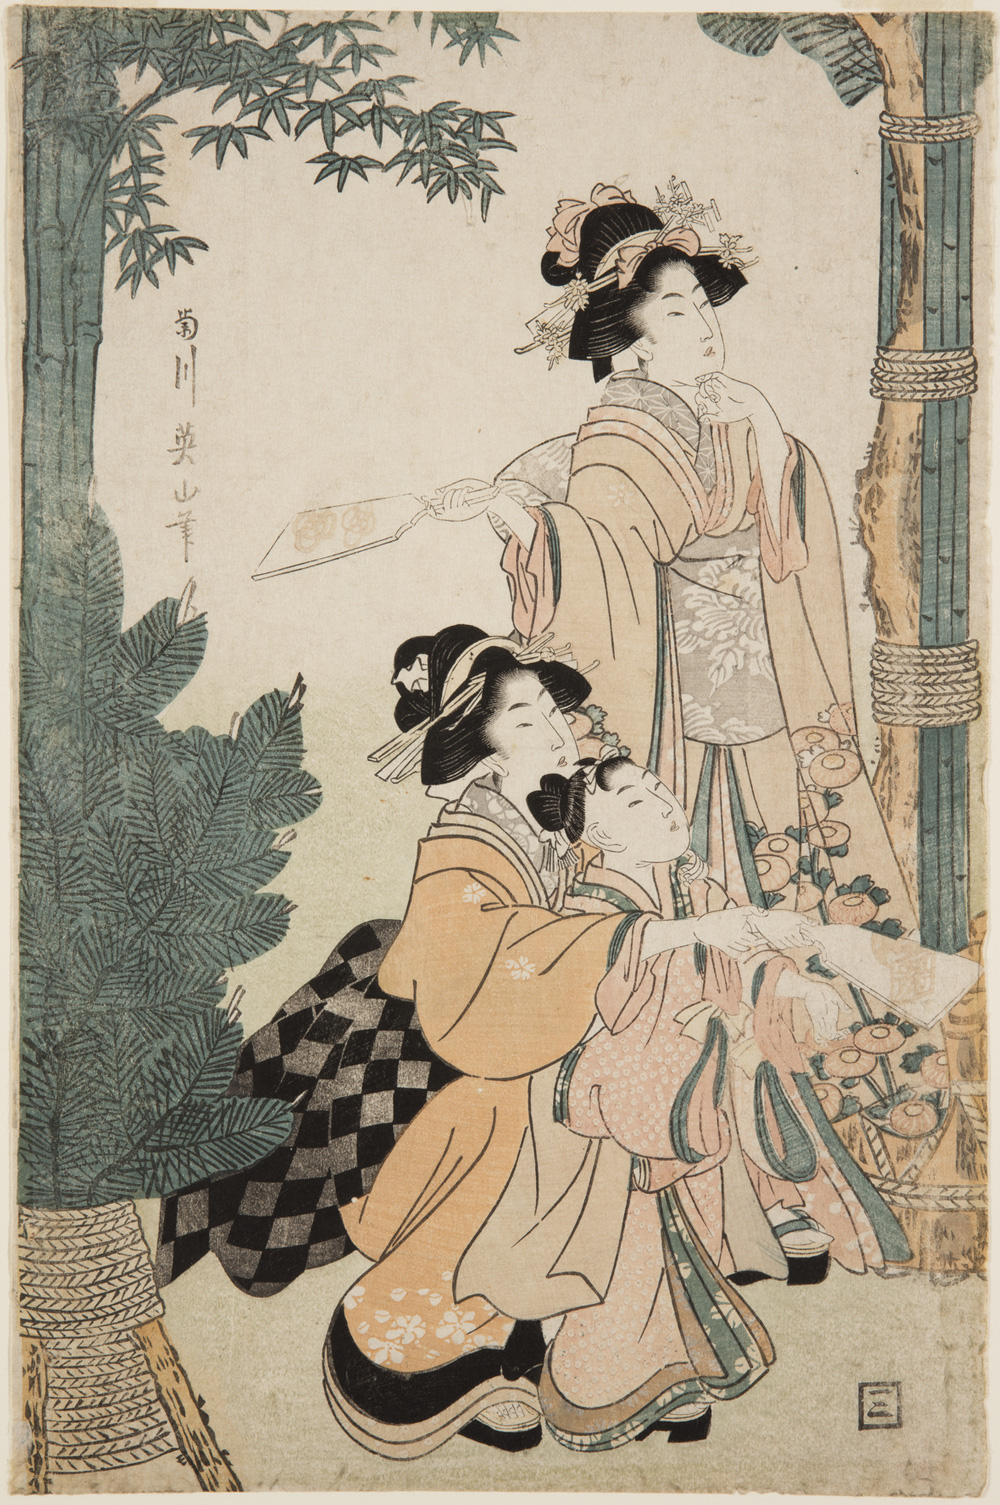 Japanese print of three women dressed in traditional clothes playing a game outside, one stands holding a bat ready, the other two crouch and one helps the other hold the bat.